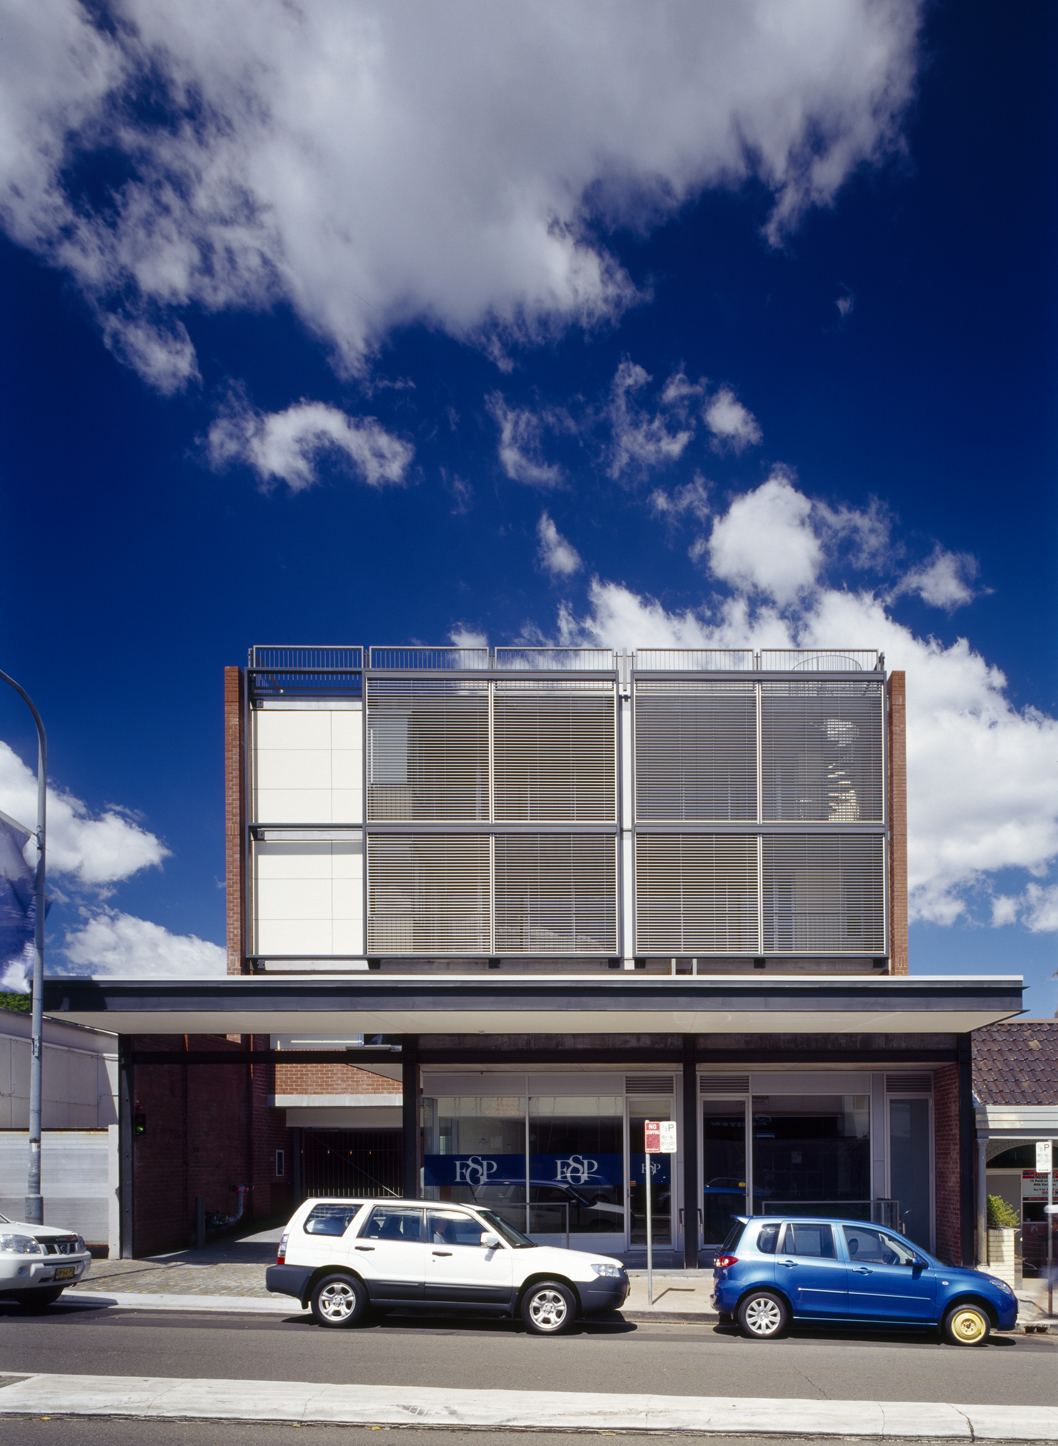 Rose Bay Apartments / Hill Thalis Architecture, © Brett Boardman